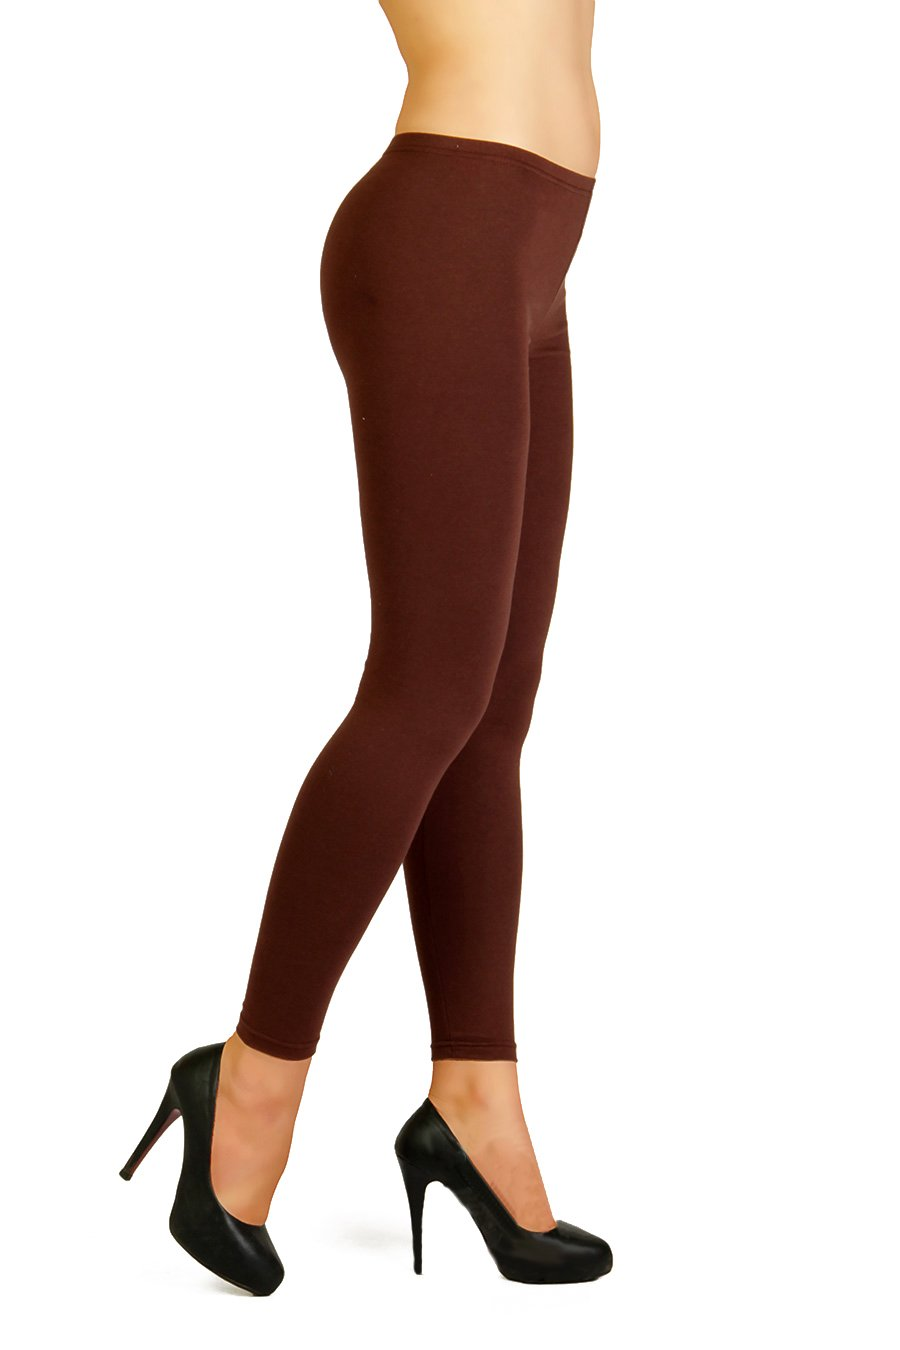 FUTURO FASHION Winter Style Full Length Very Warm Thick Heavy Cotton Leggings (Fleece Inside) Sizes 8-26 P28 PT-P28